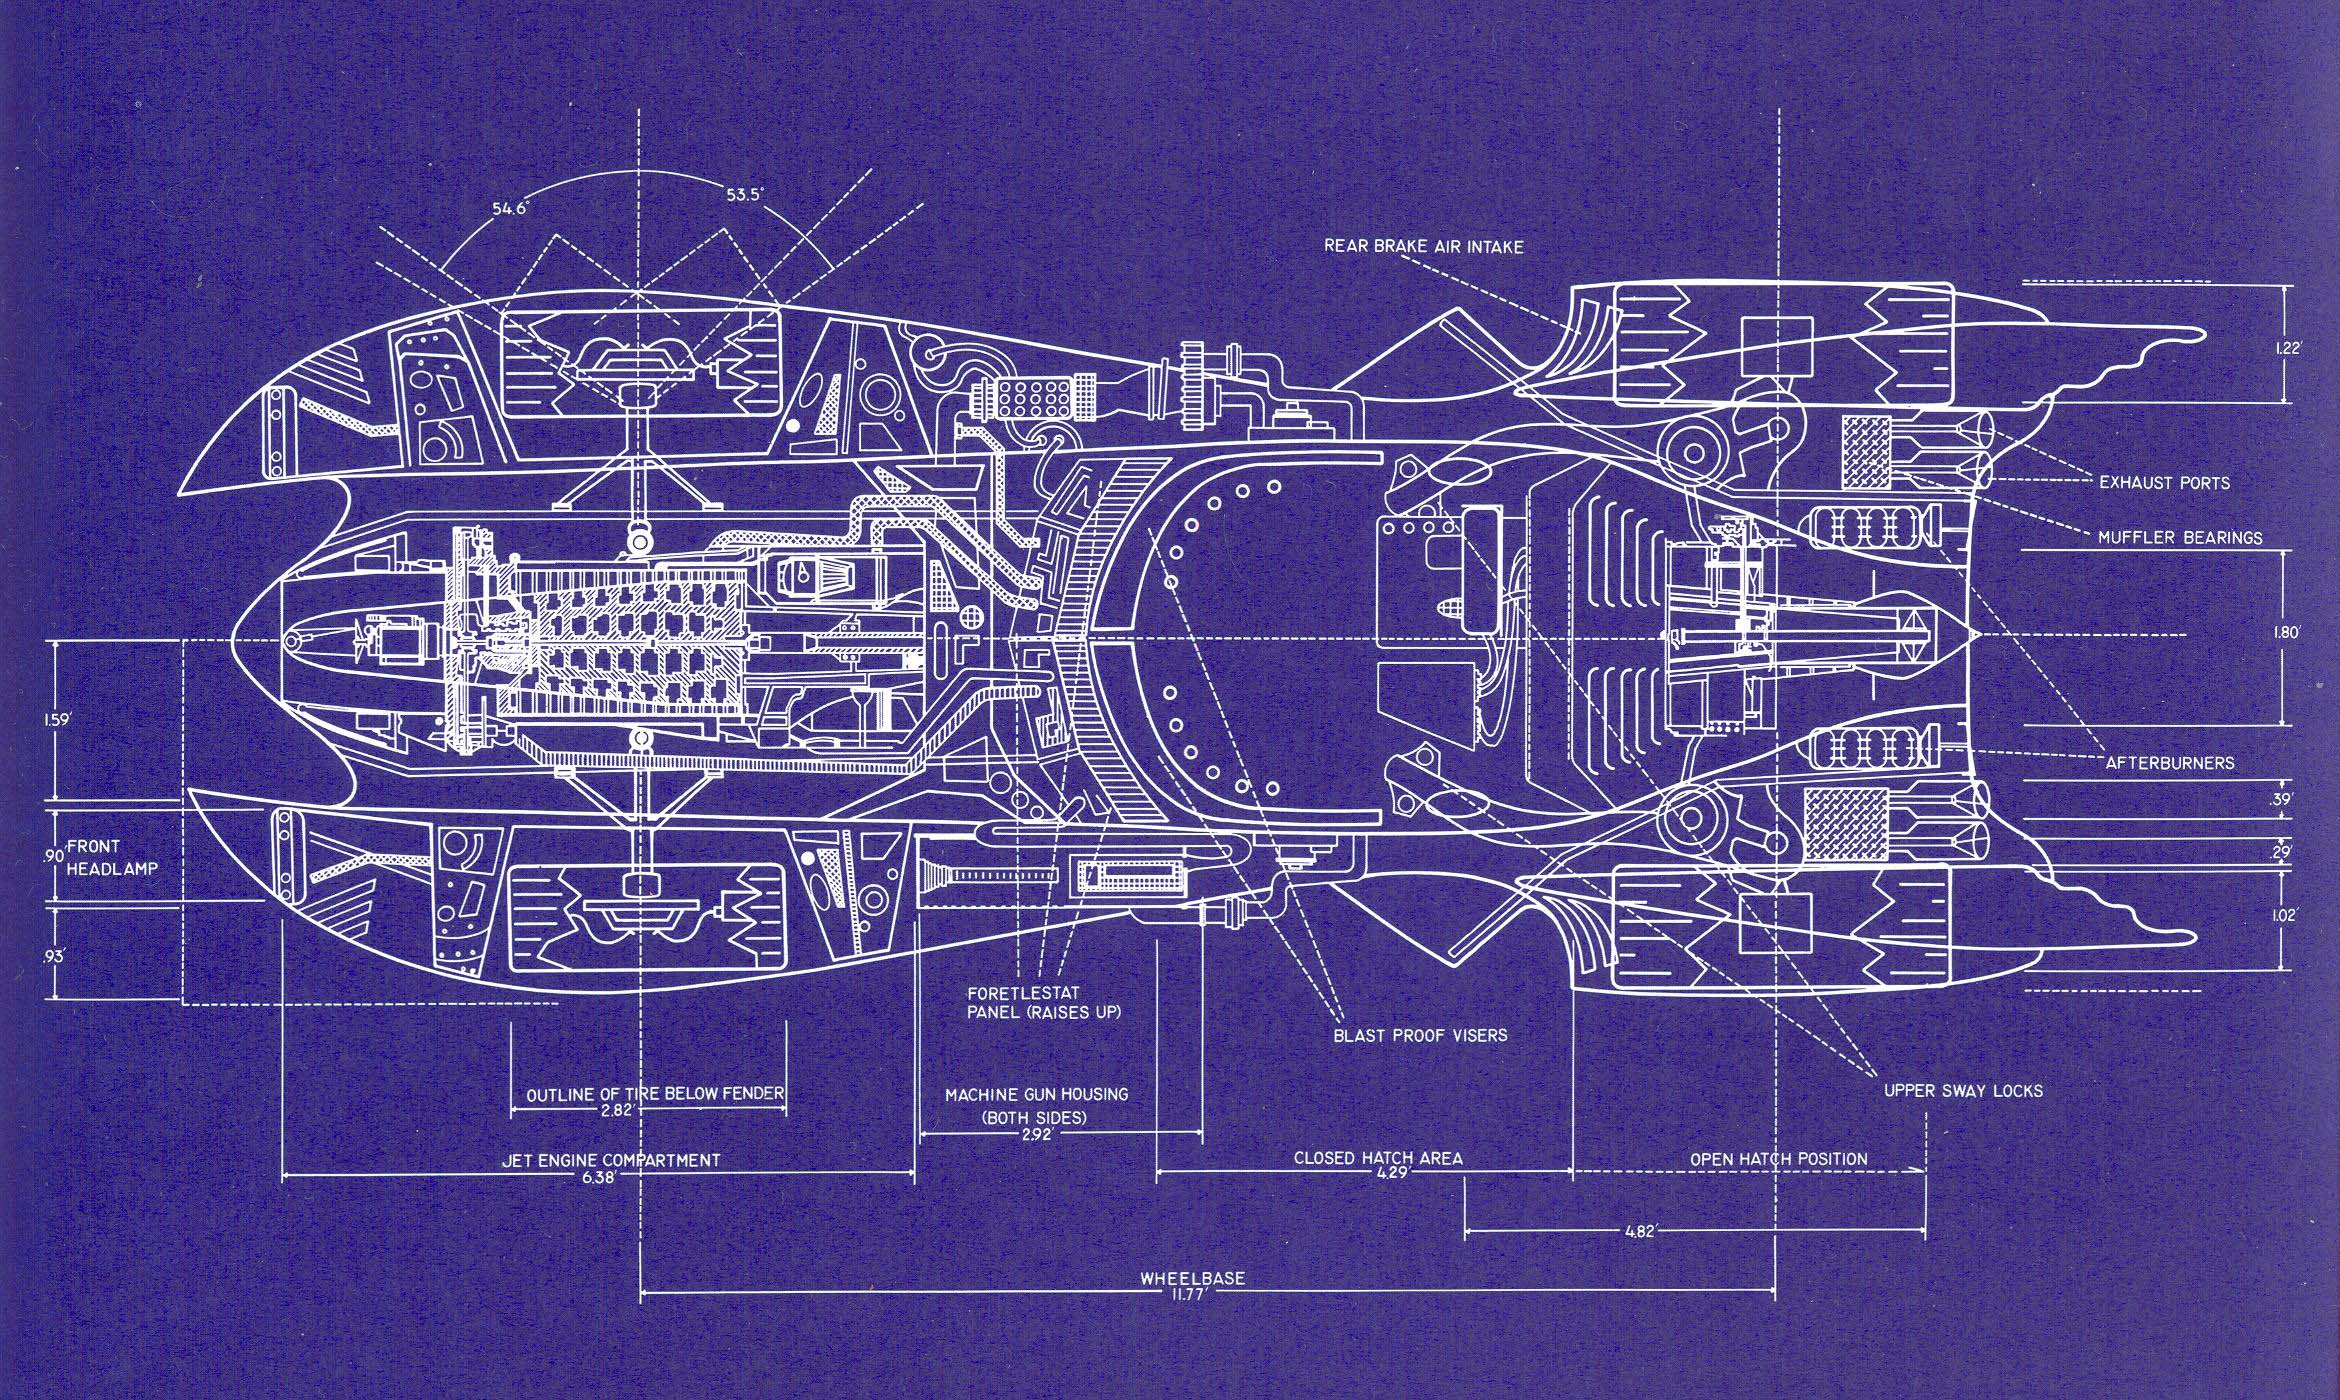 Batmobile1989 blueprint 1989 batmobile social media for How to find blueprints of a house